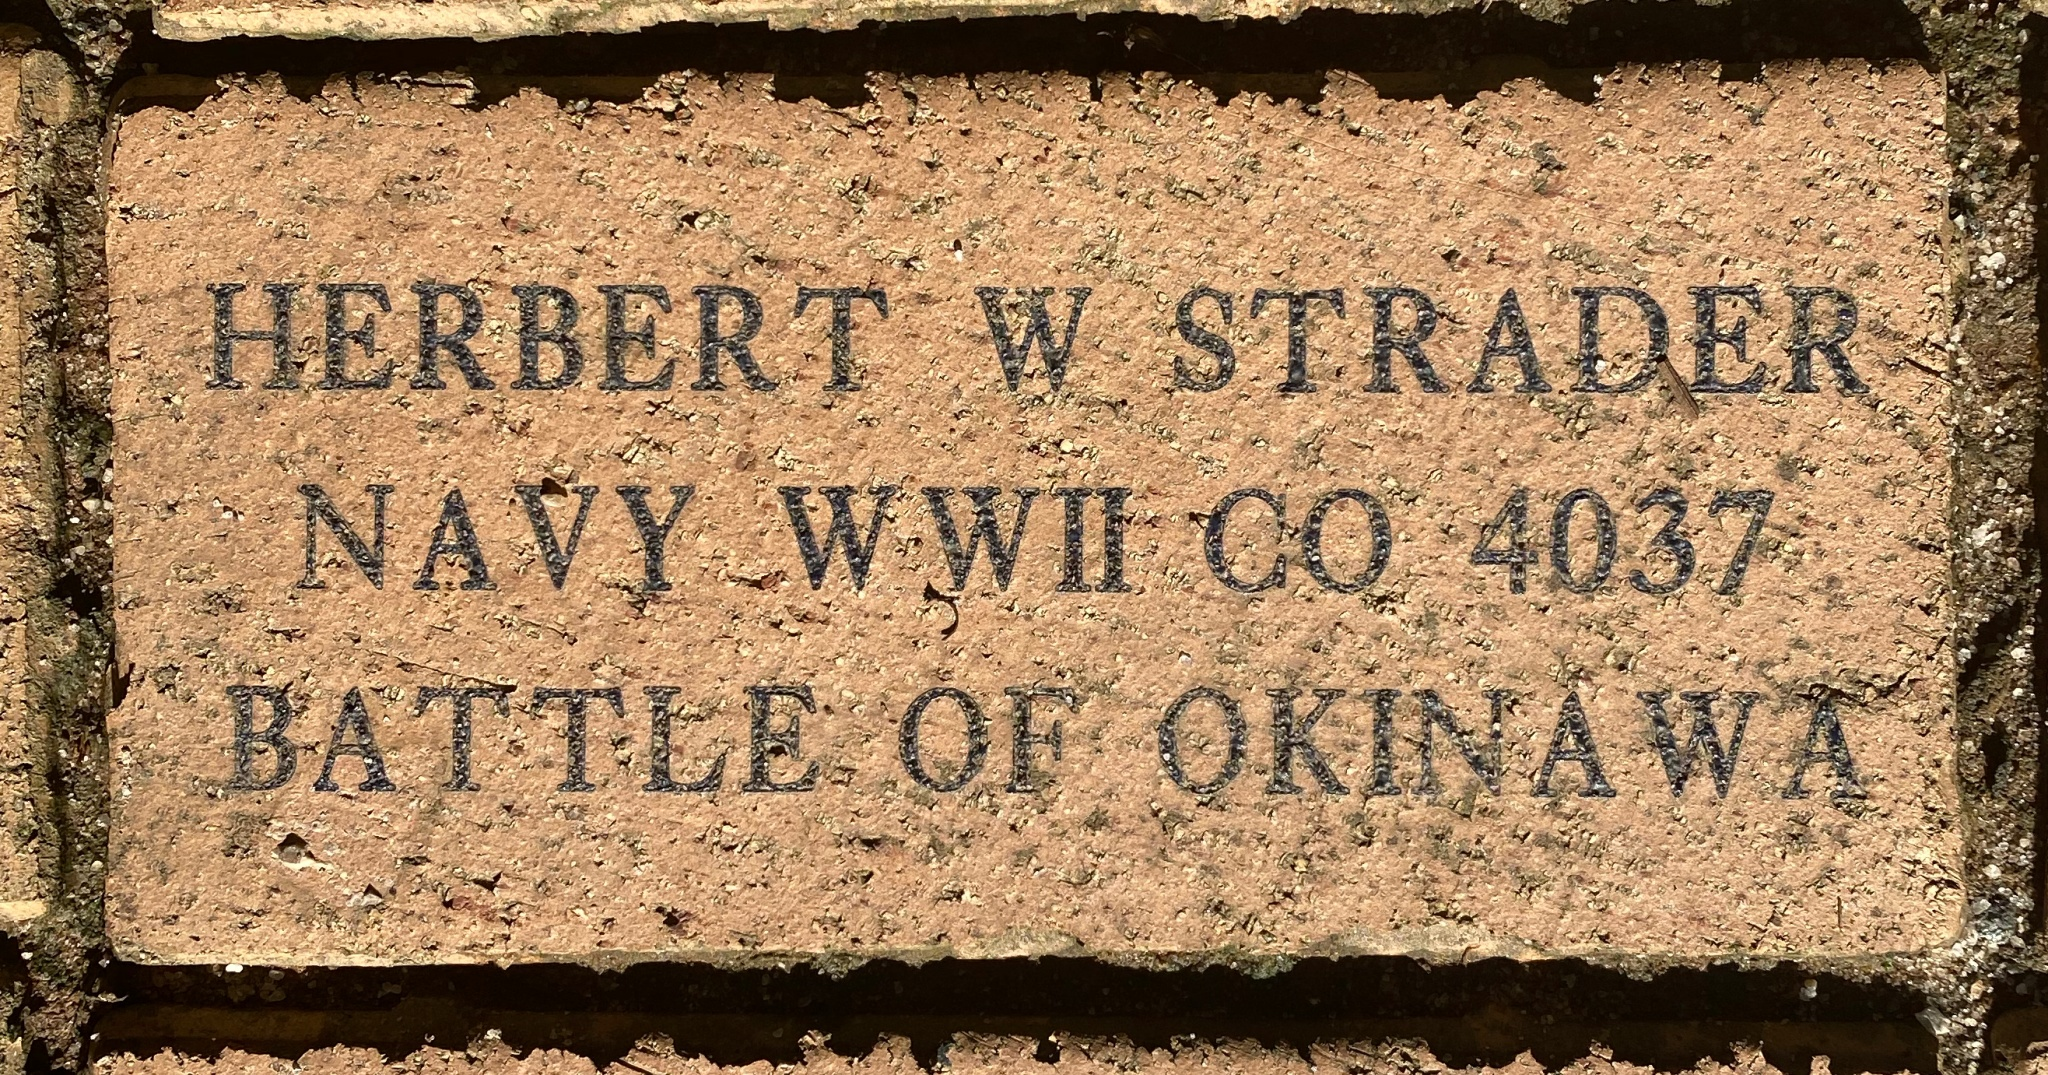 HERBERT W STRADER NAVY WWII CO 4037 BATTLE OF OKINAWA